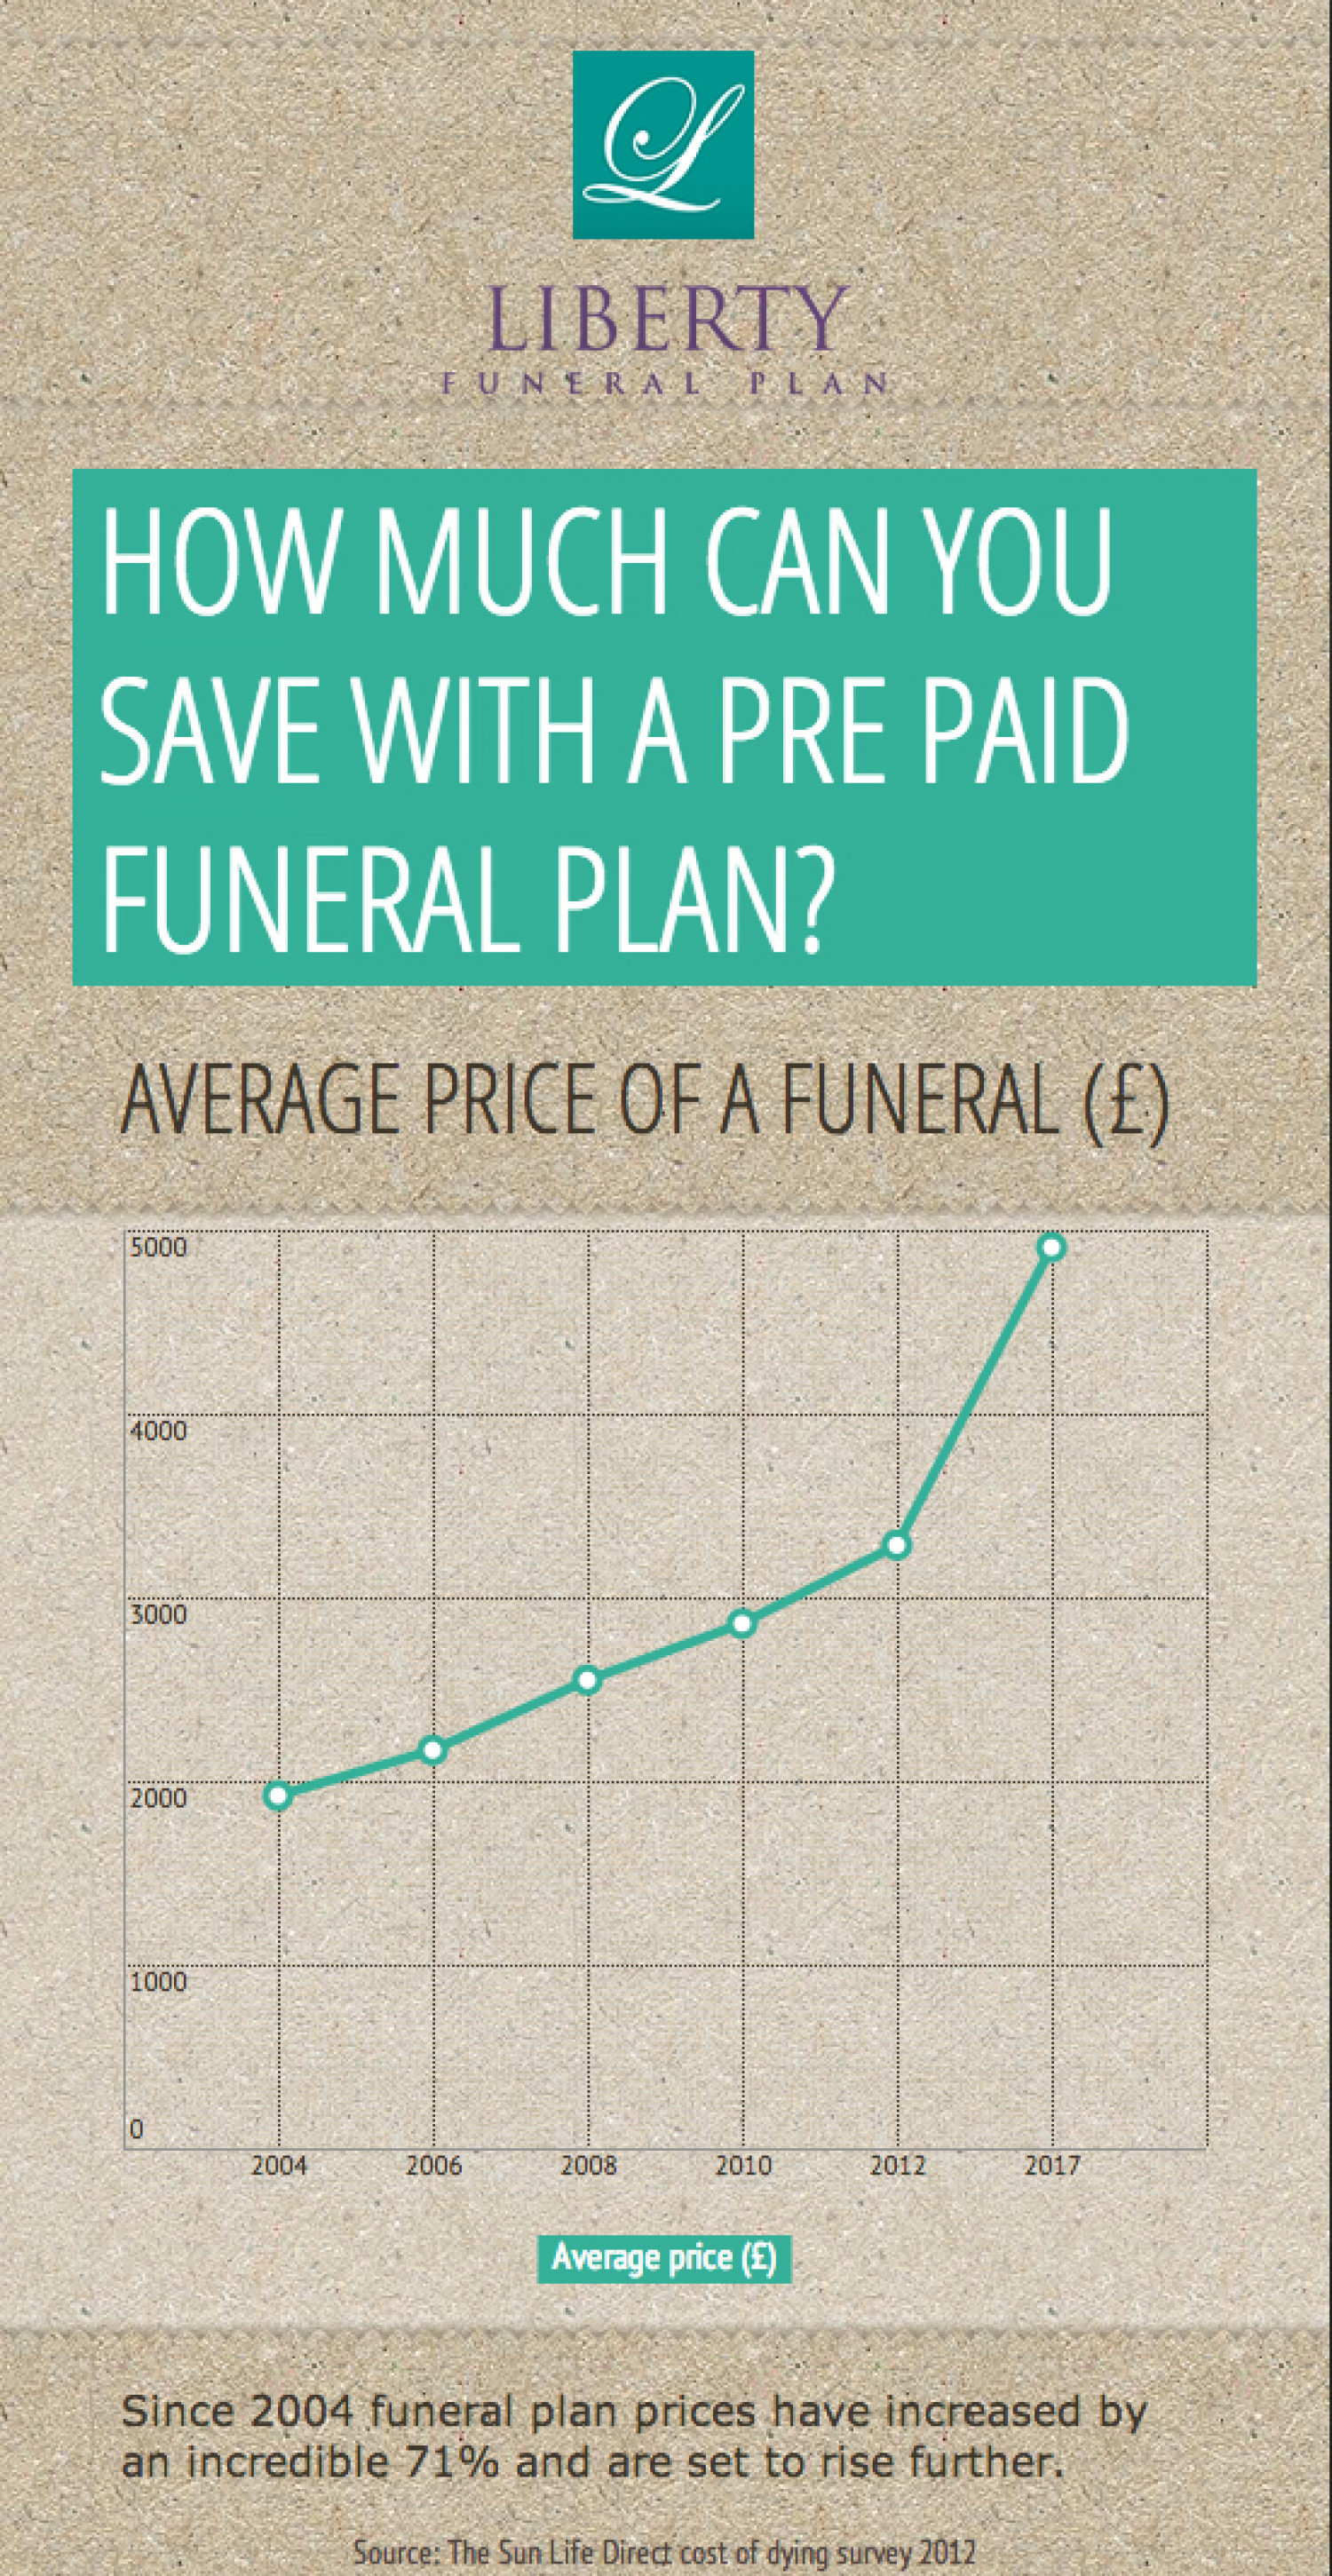 How much can you save with a pre paid funeral plan? Infographic